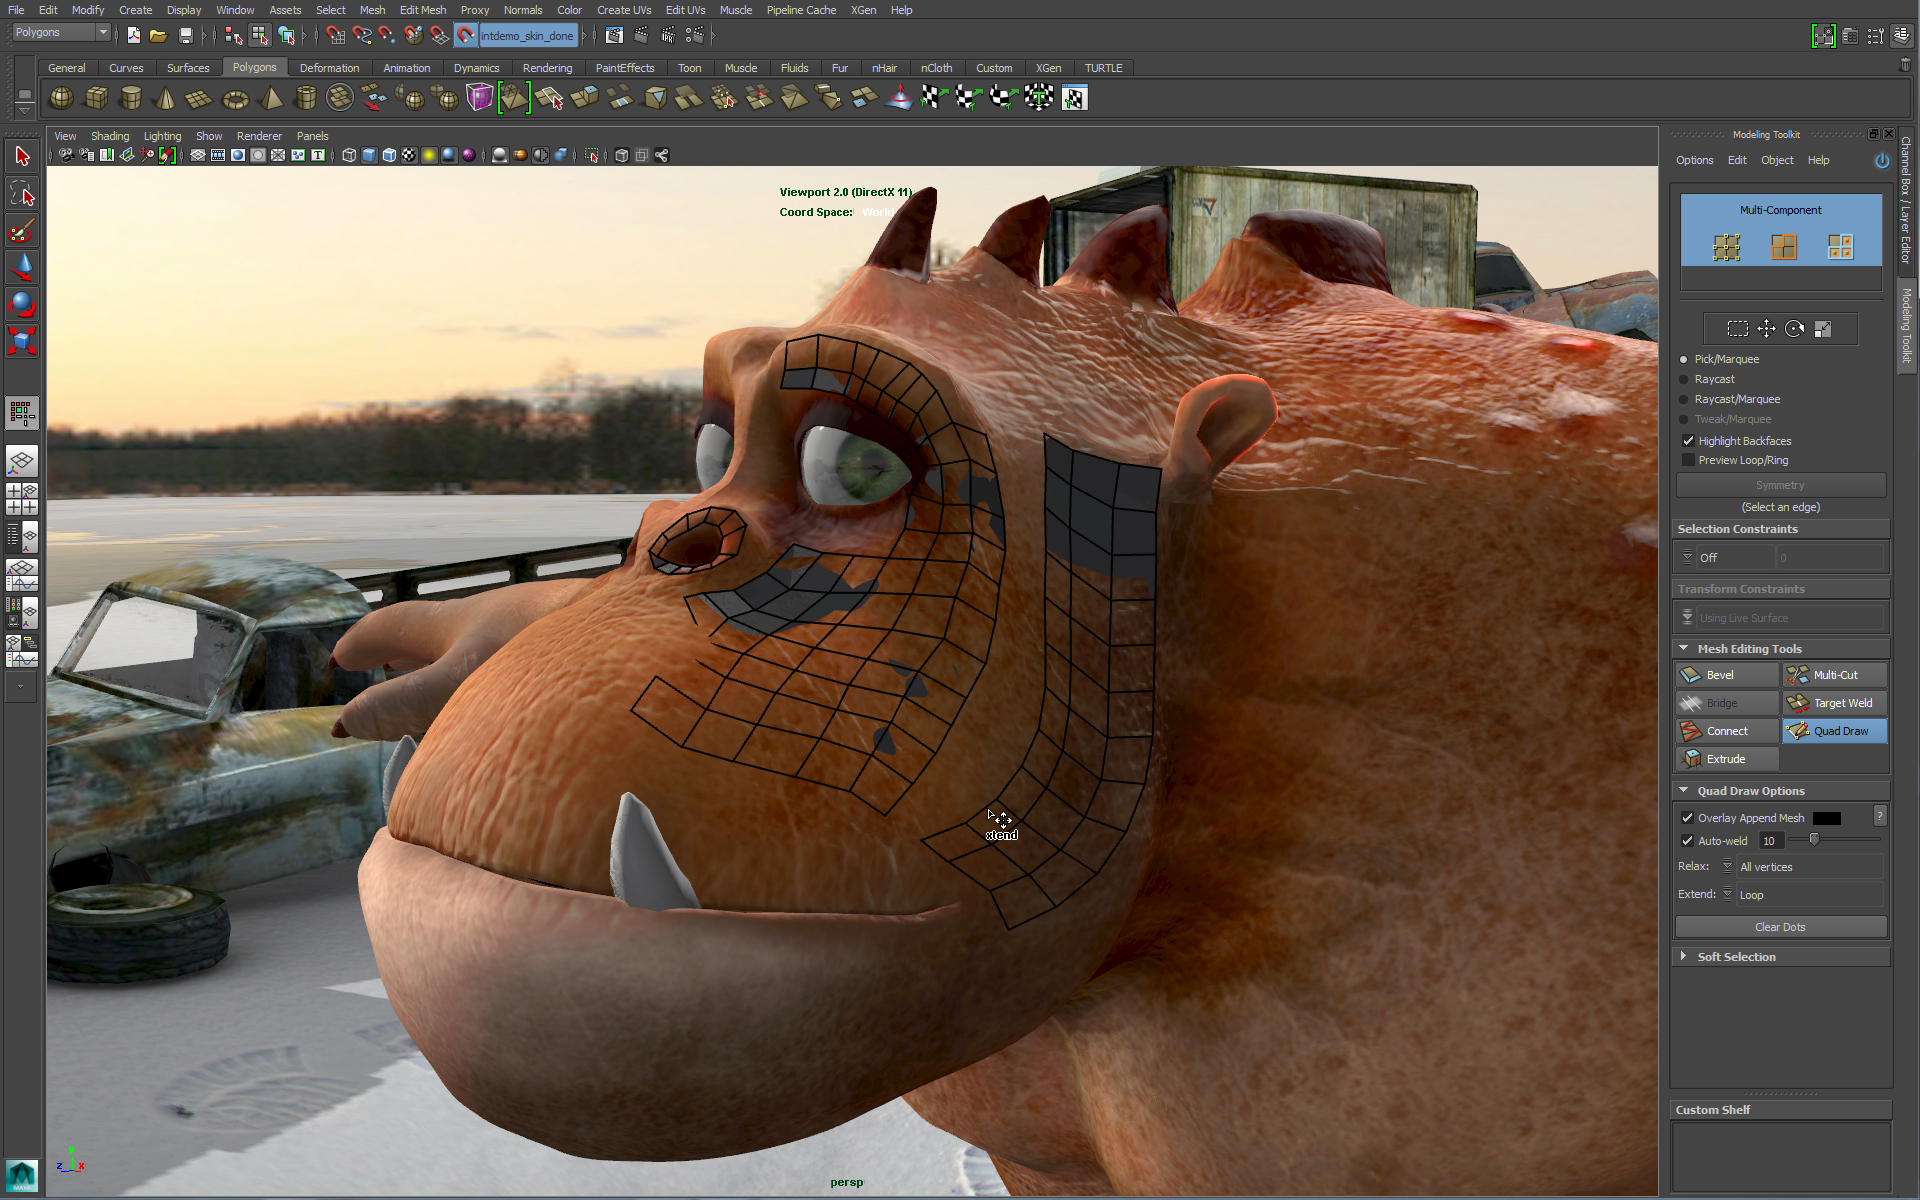 Extension para autodesk Maya 2014-maya_2014_ext_1_quad_draw_and_extend_edge.png